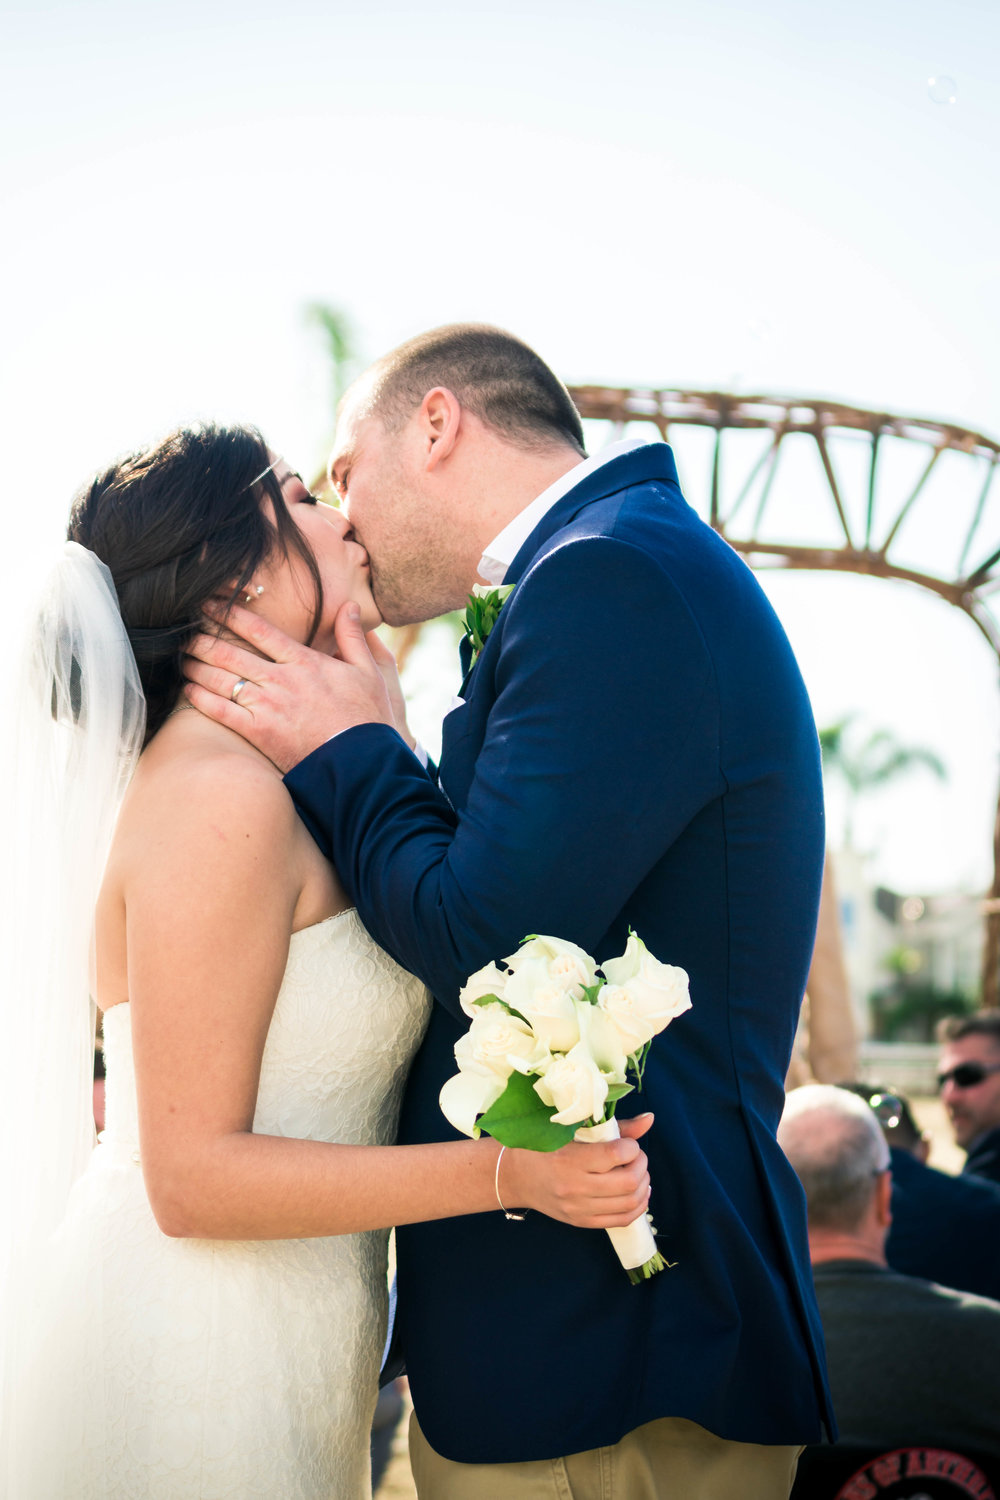 The groom passionately kissing his bride after they have been married